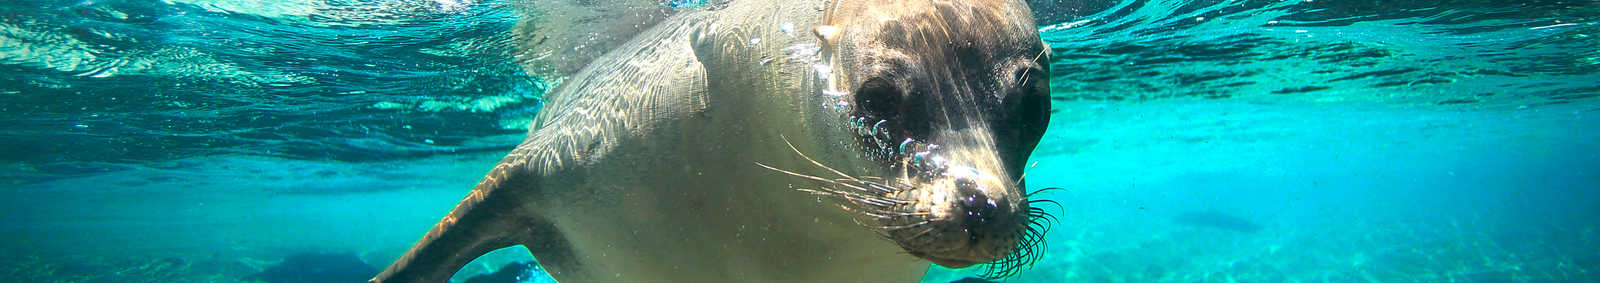 Curious sea lion underwater, Galapagos Islands